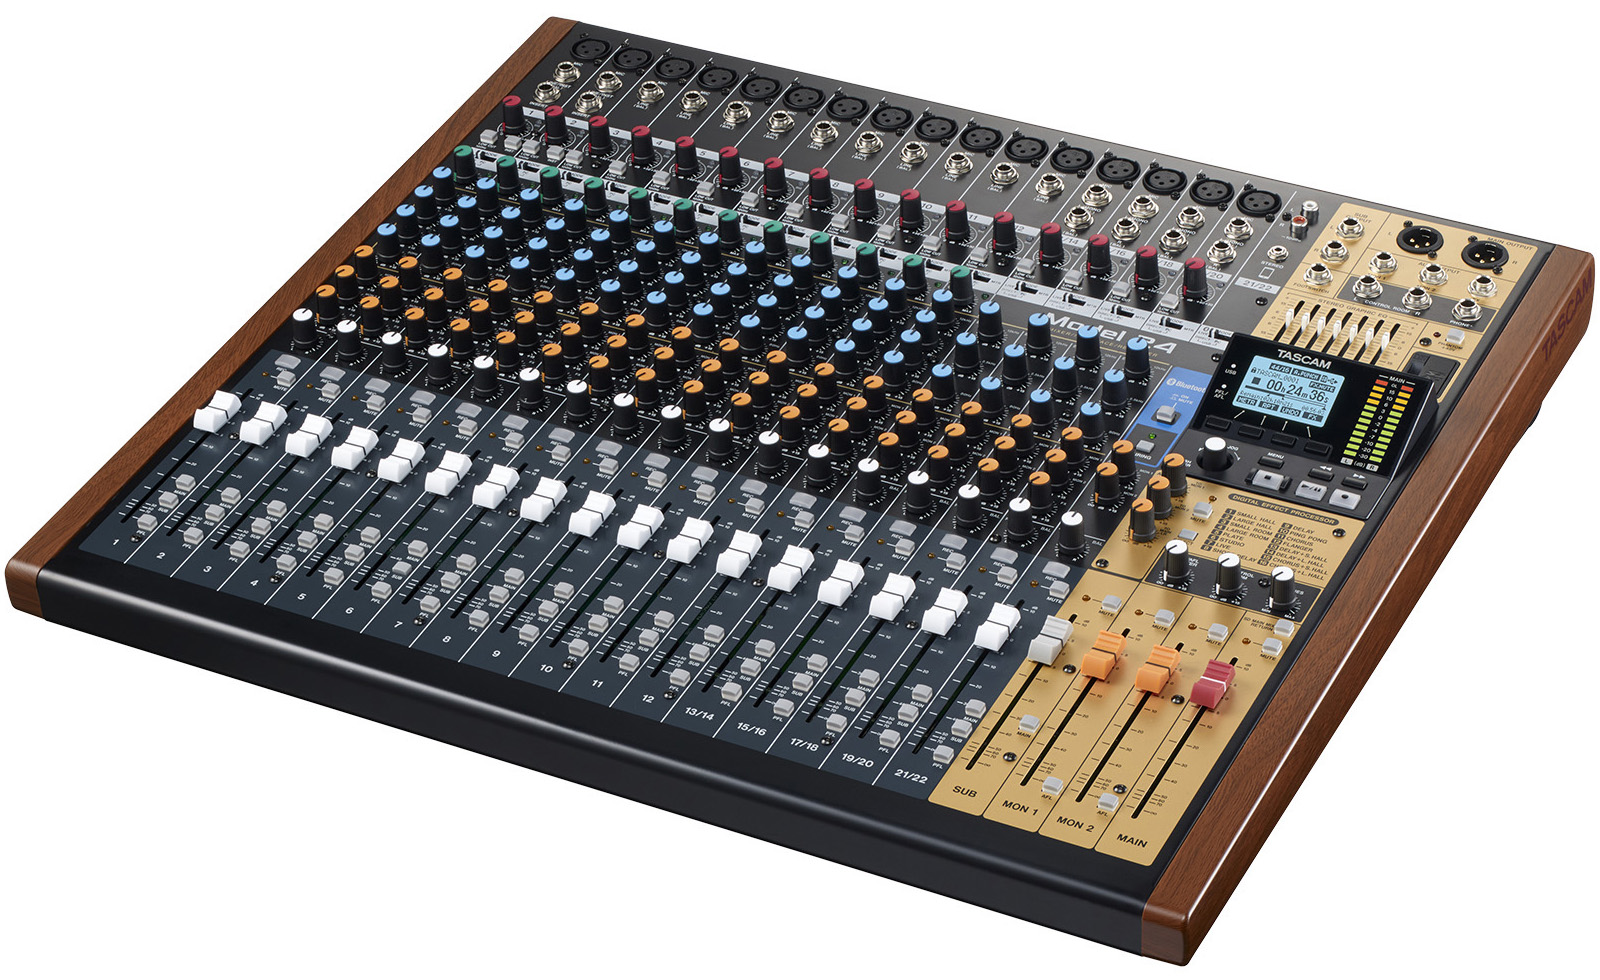 Review: Tascam Model 24 Multi-Track Live Recording Console